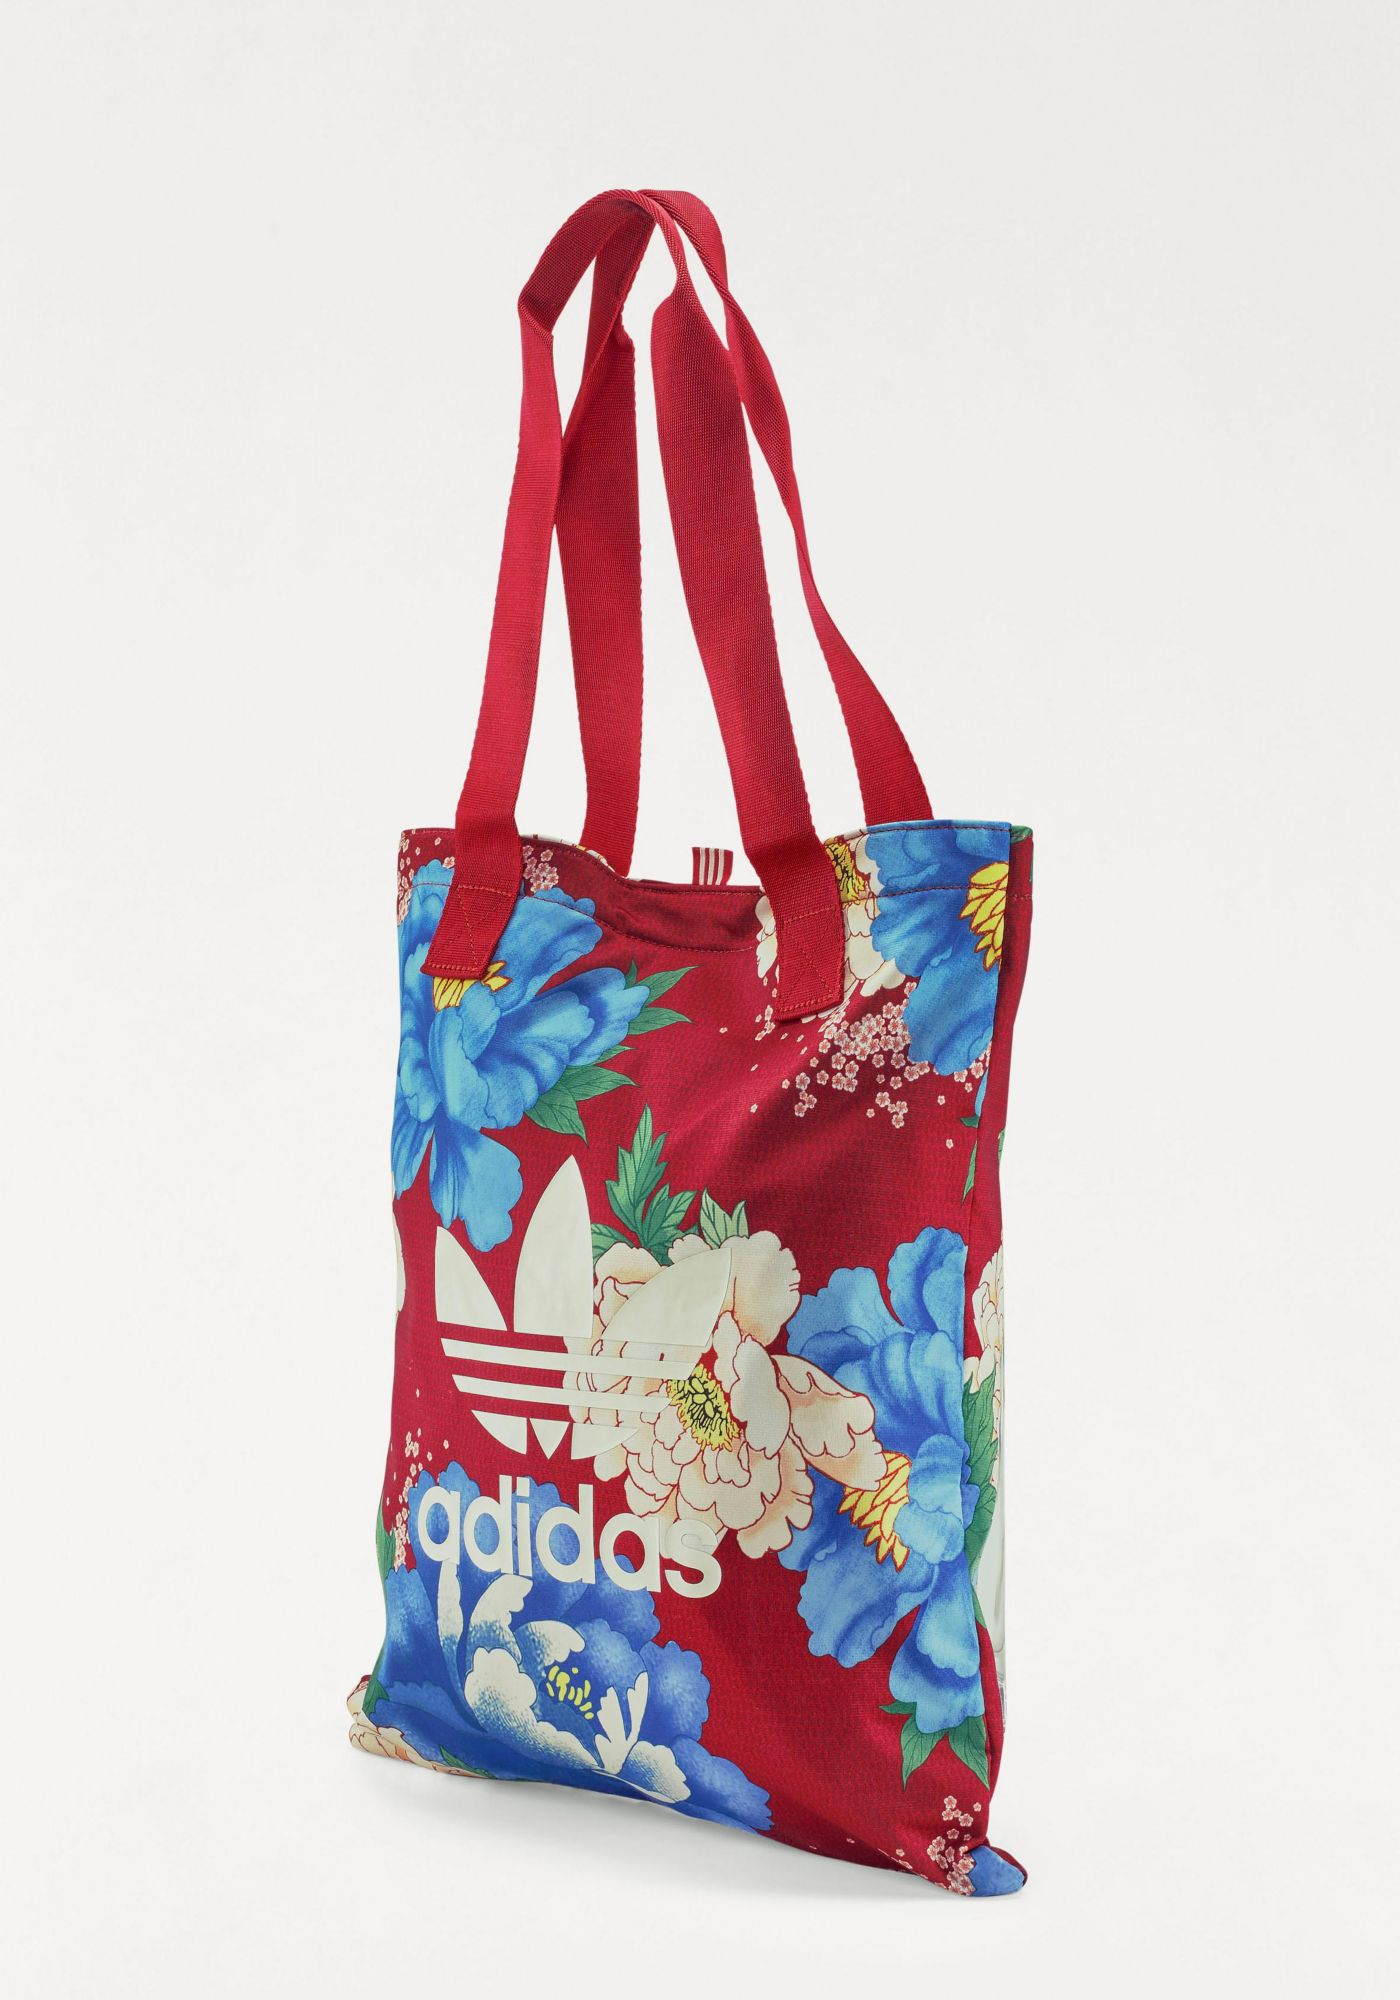 ADIDAS ORIGINALS adidas Originals Shopper